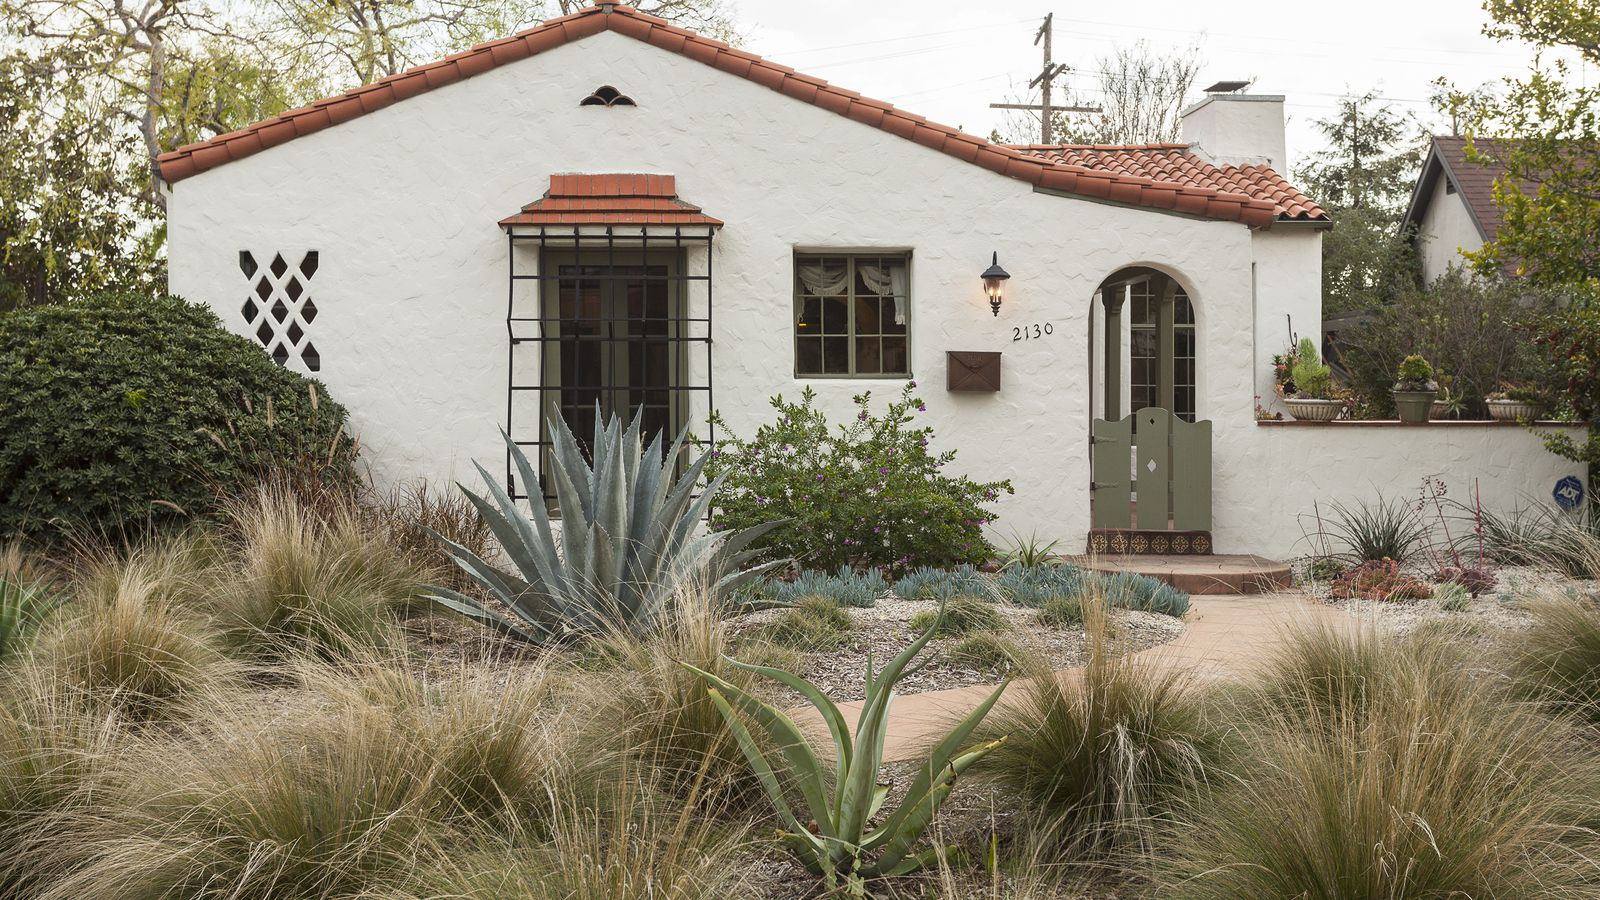 Bidding for adorable Spanishstyle in Pasadena will start at 749K  Curbed LA